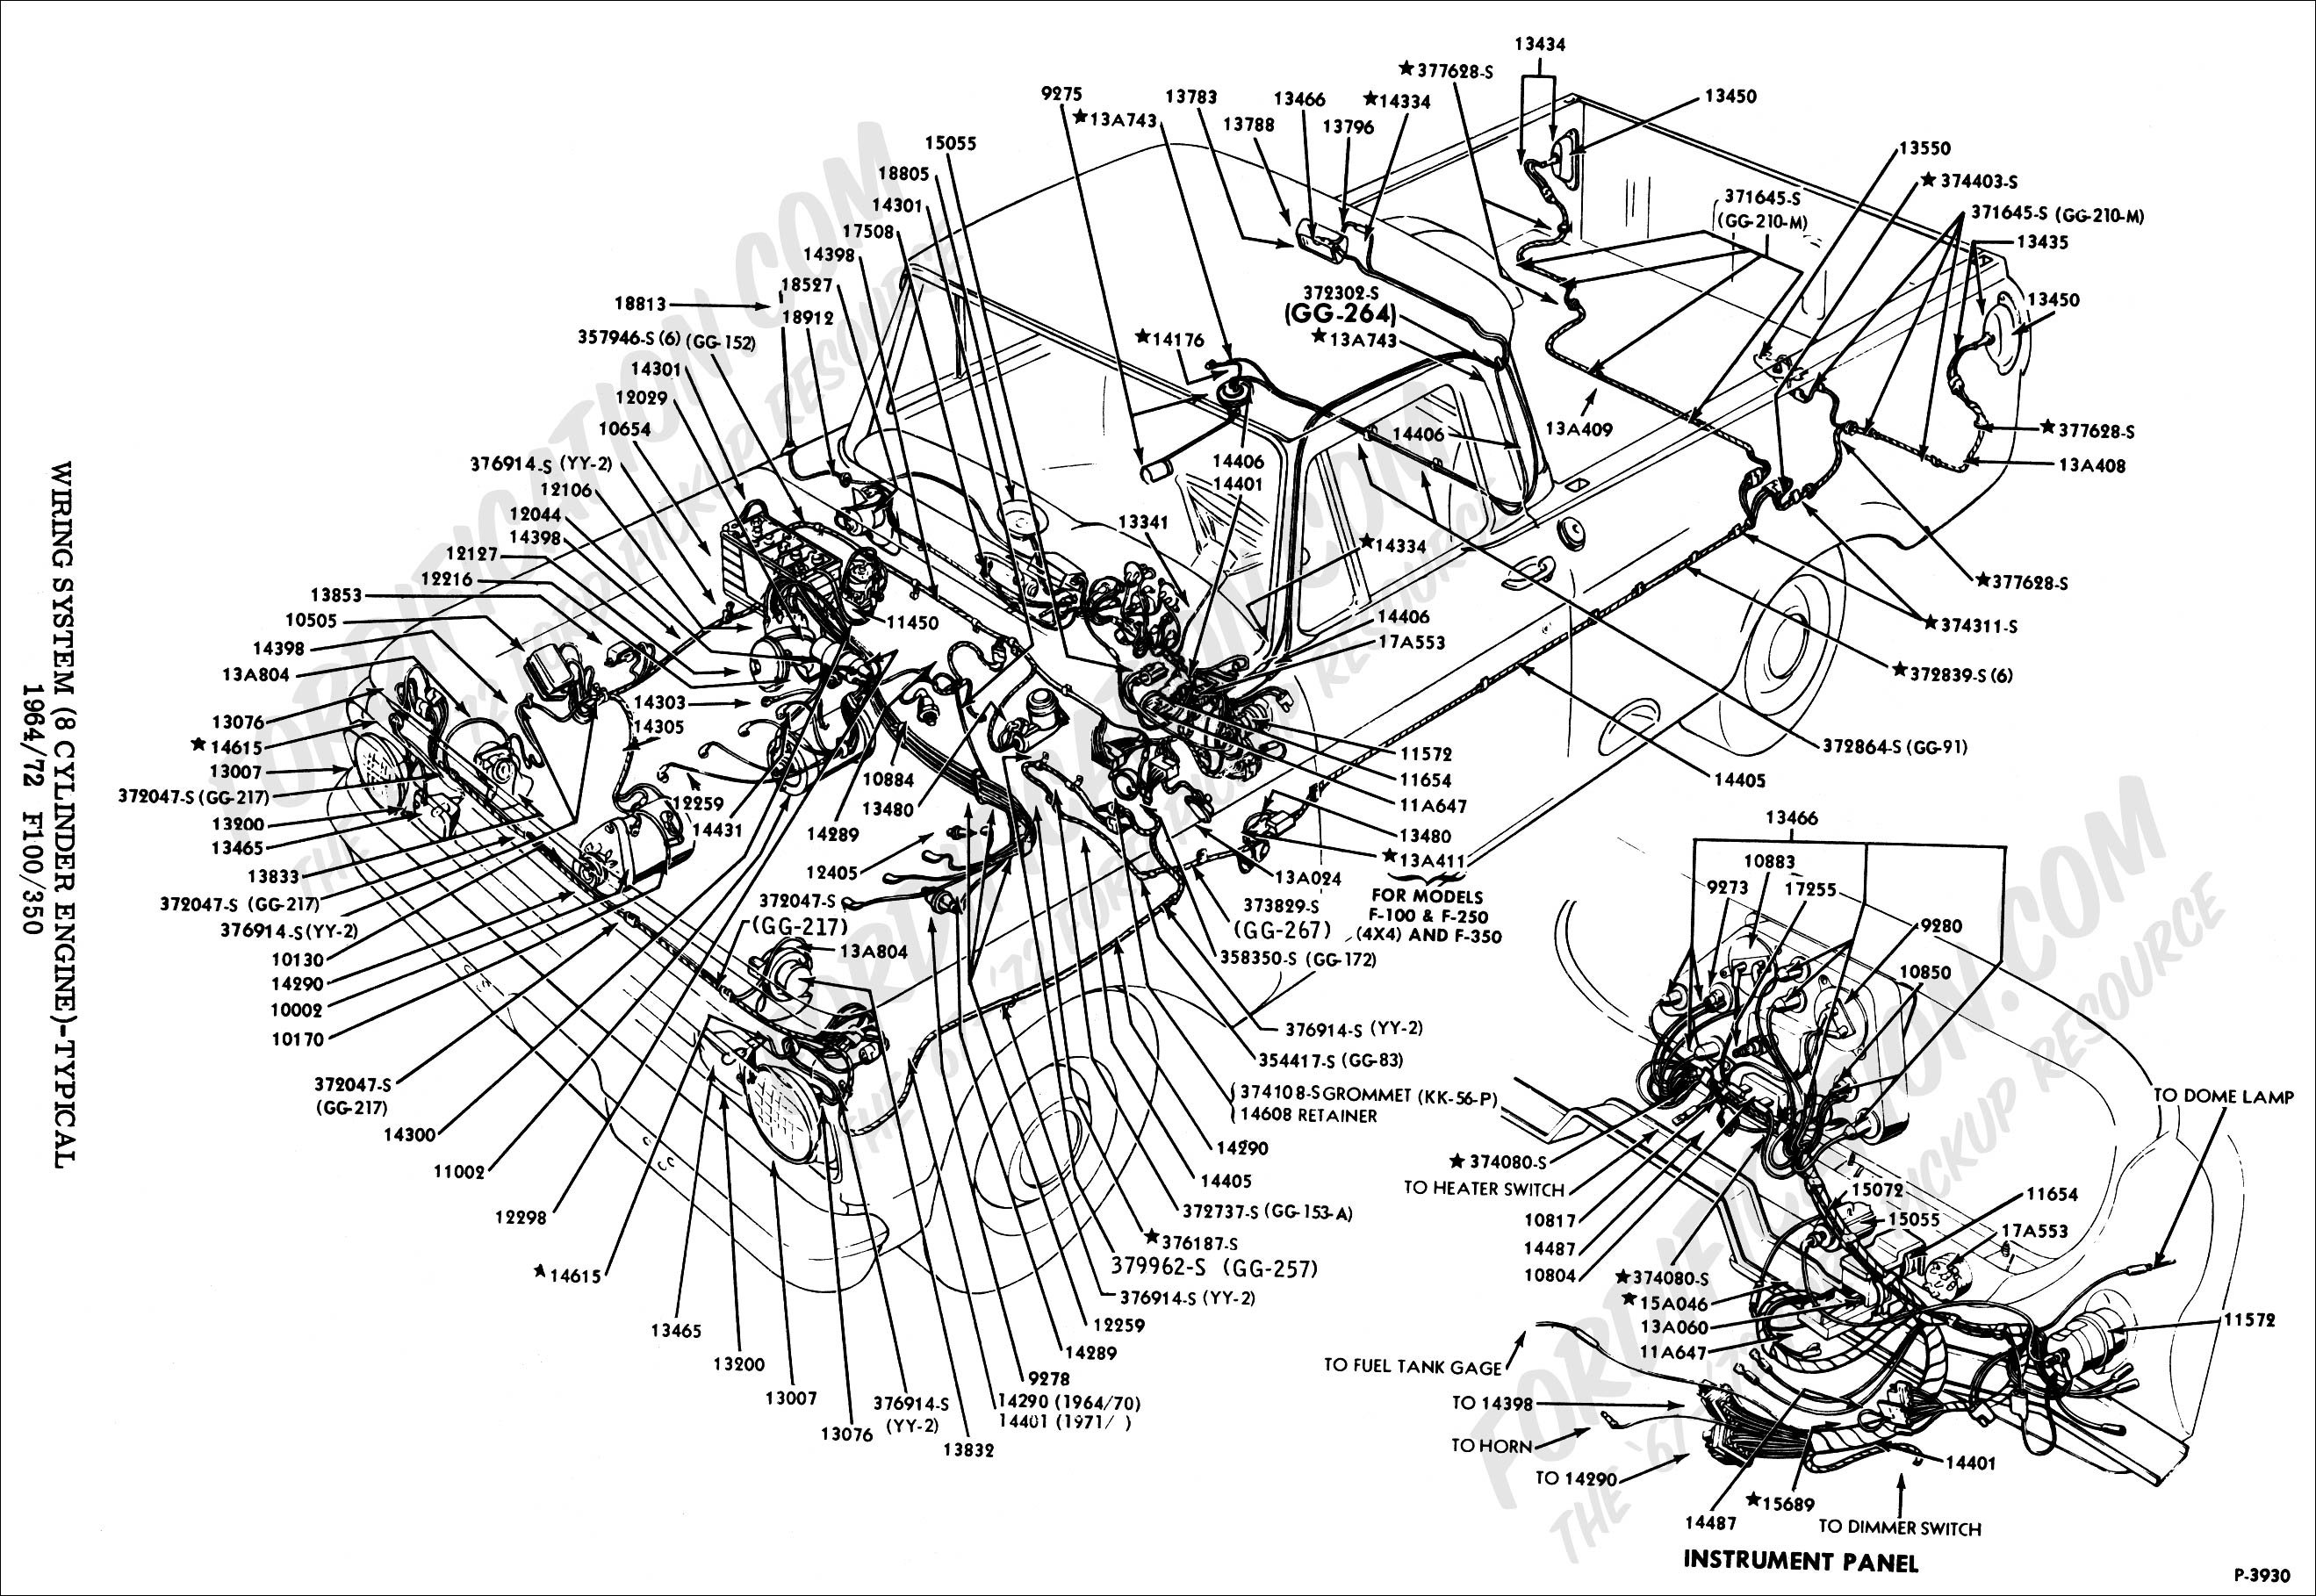 wiringsystem_HI 1964 f100 wiring diagram 1965 f100 wiring diagram \u2022 free wiring wiring harness 1964 mustang at bayanpartner.co